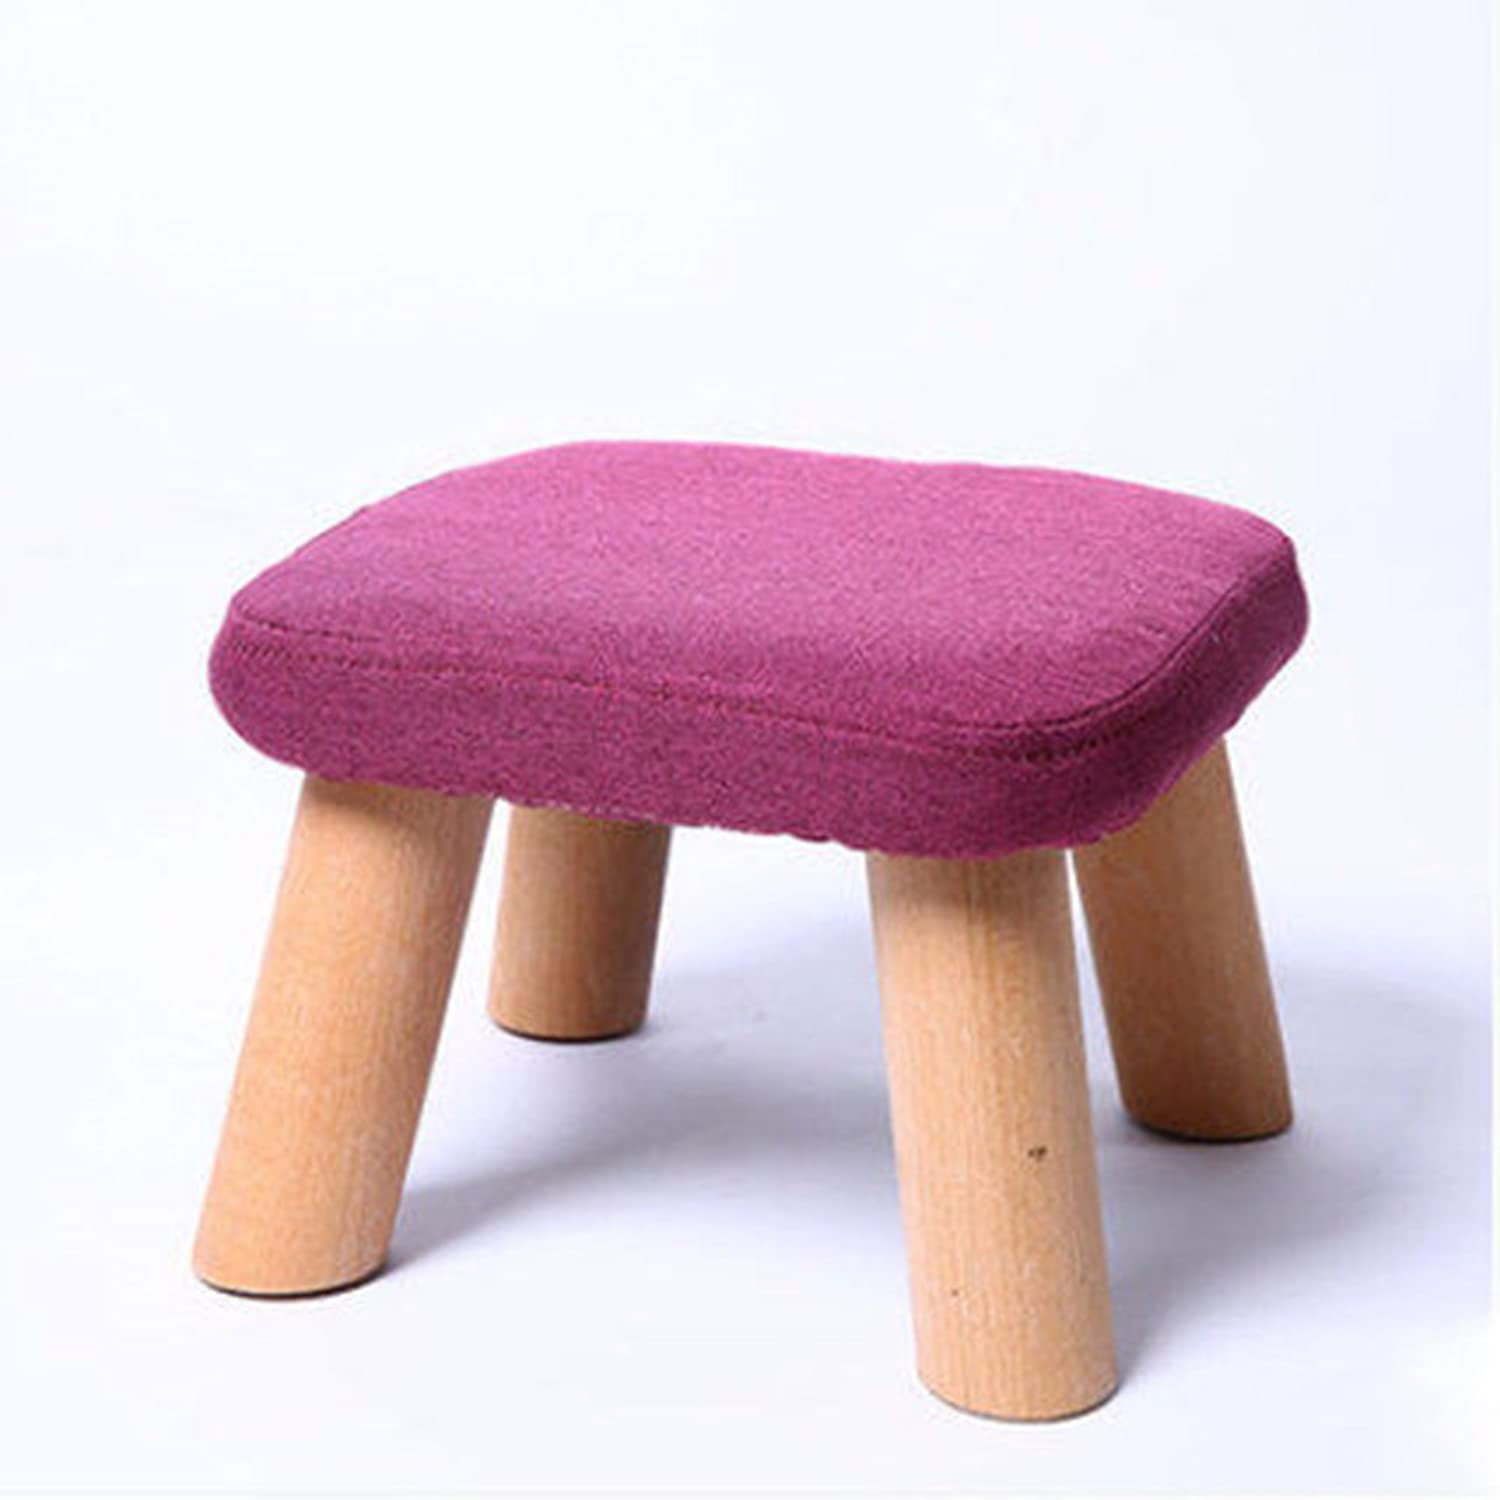 Xiaolin Home Stool Solid Wood Fashion Creative Stool Living Room Fabric Sofa Stool Bench shoes Stool Adult Bench Stool (color   Purple Square Stool)